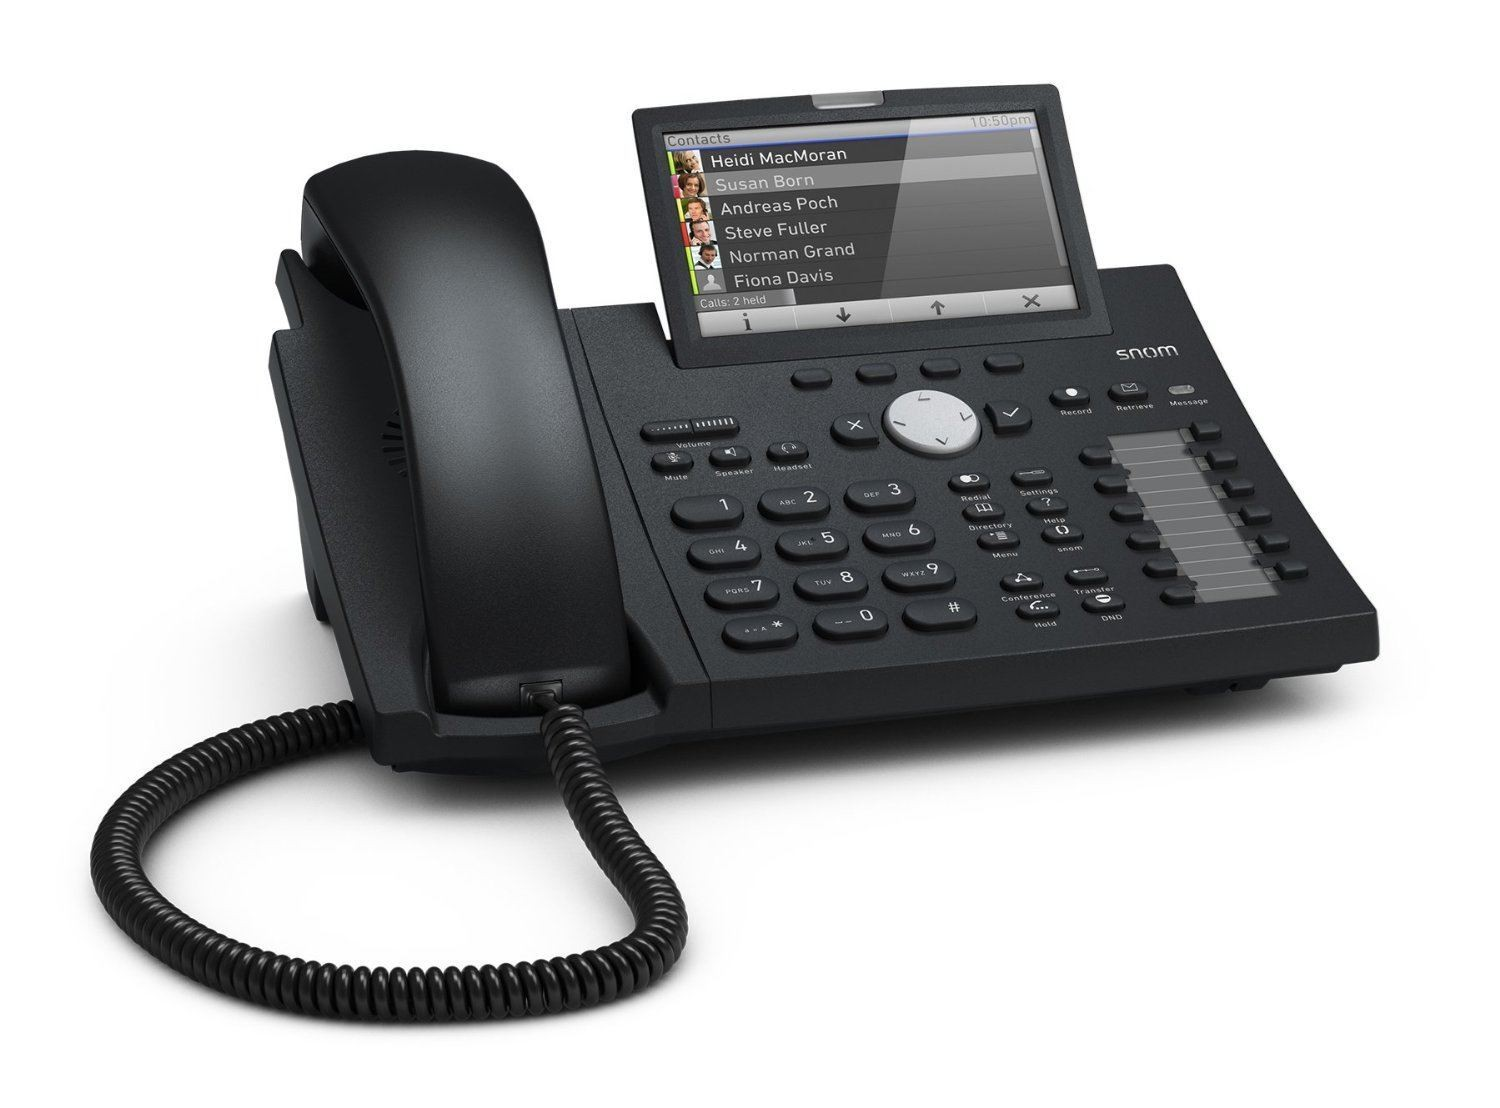 Snom D375 Voip Sip Telephone From 163 164 58 00004141